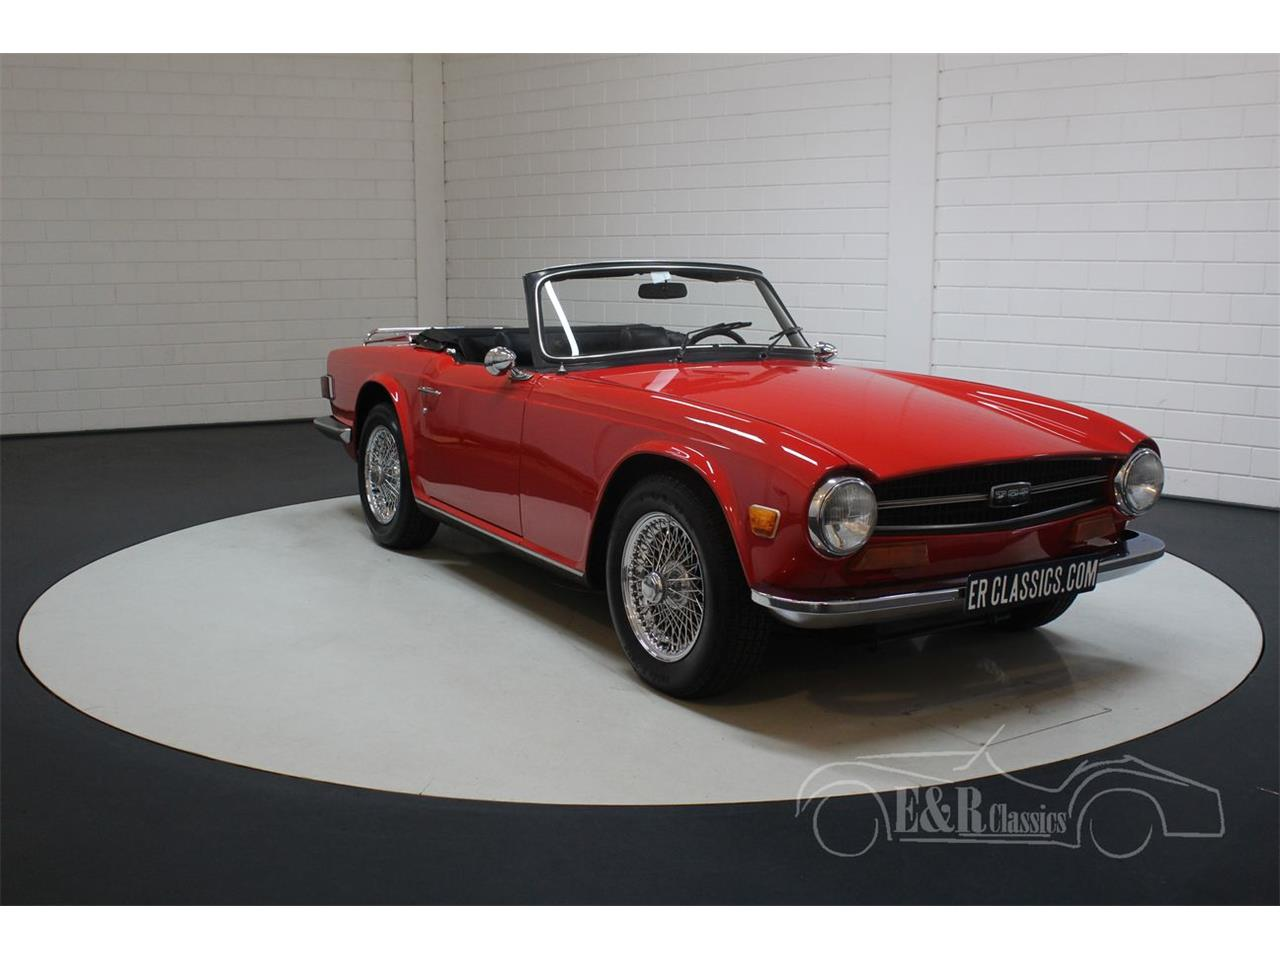 Large Picture of Classic '73 Triumph TR6 located in Noord Brabant - $25,800.00 - PWMQ